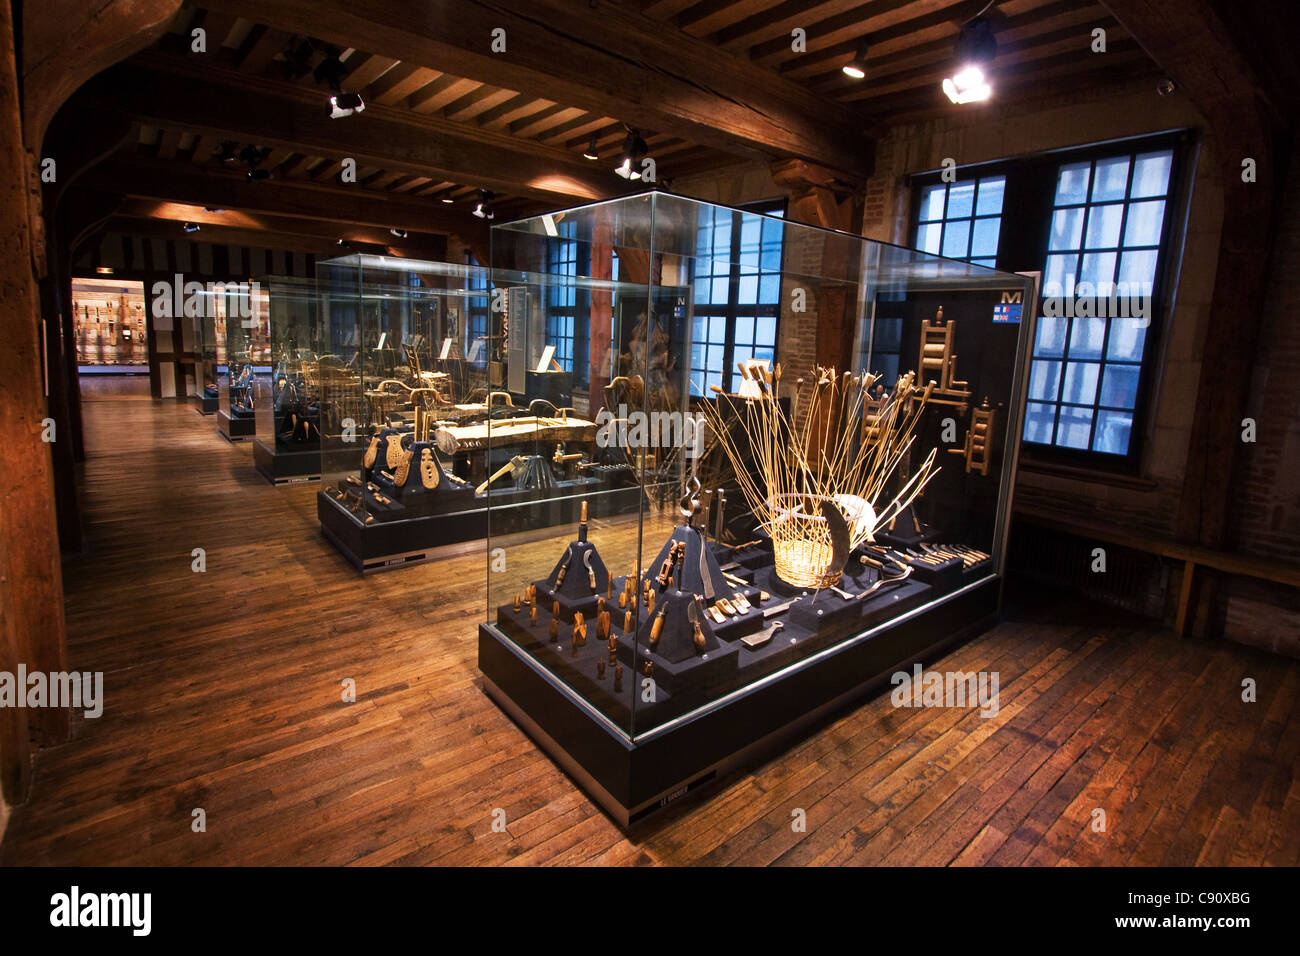 Troyes tool museum in France - Stock Image